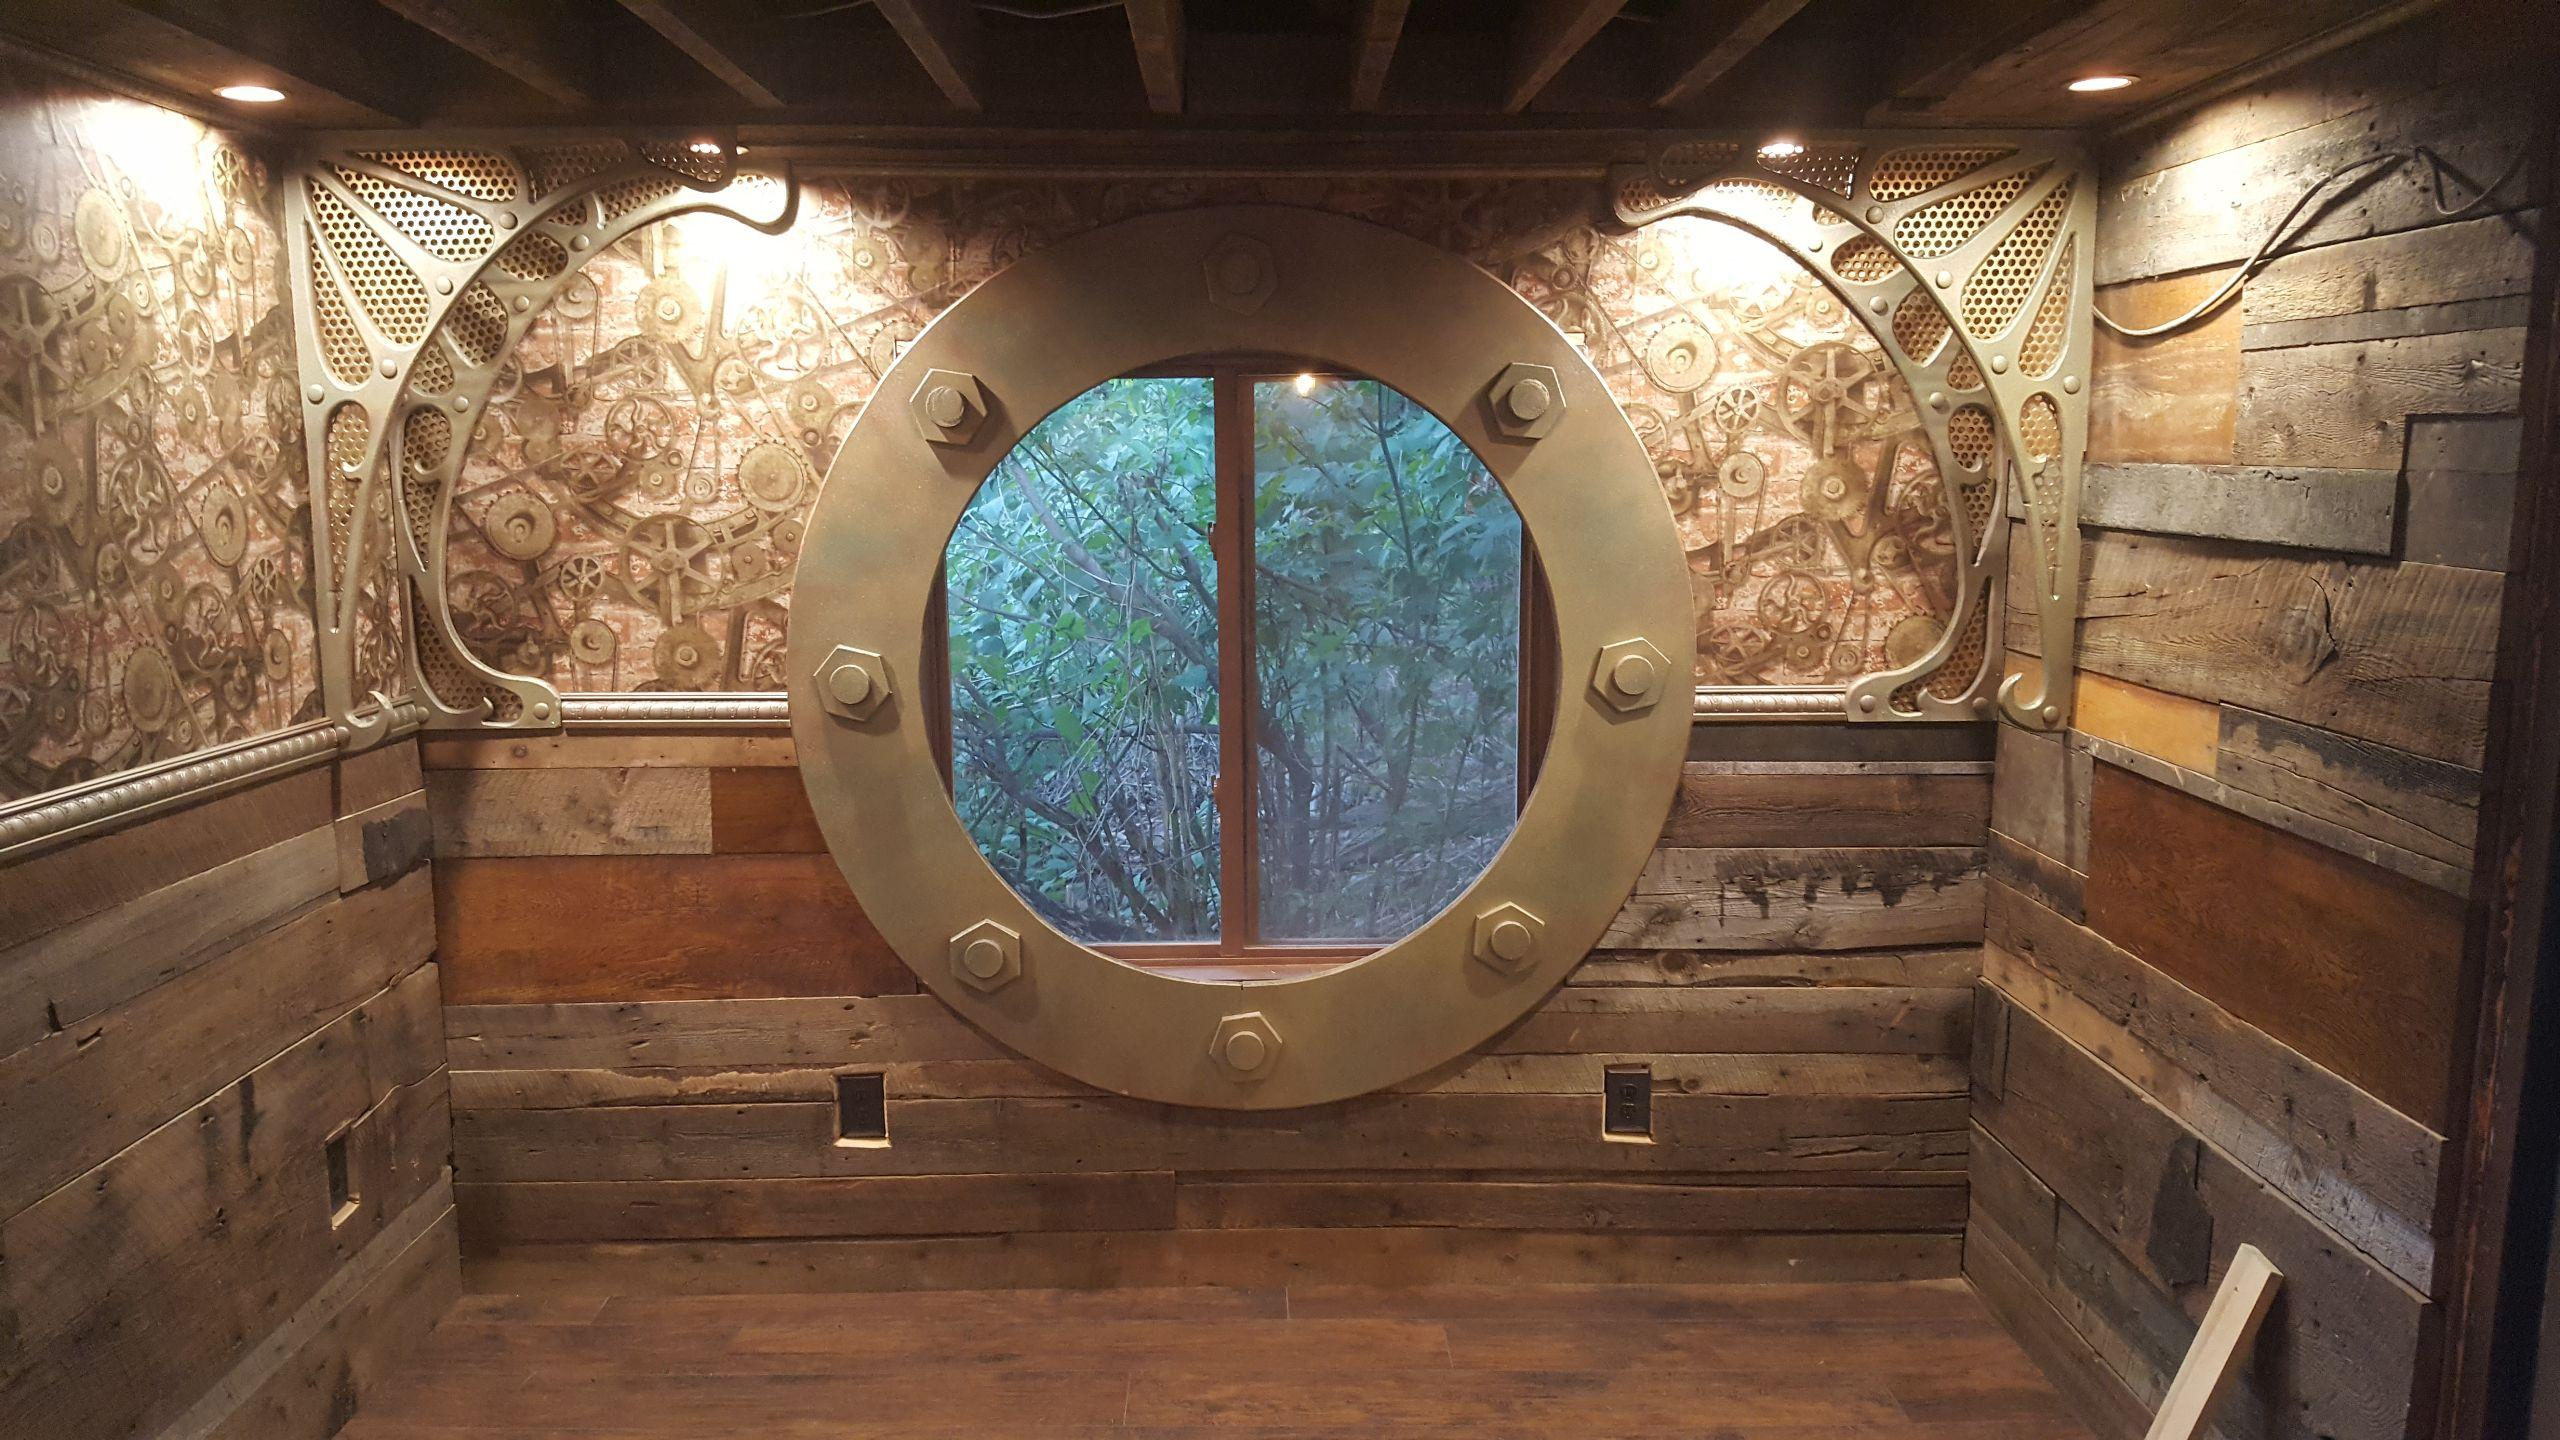 A Big Round Window with Steampunk Style